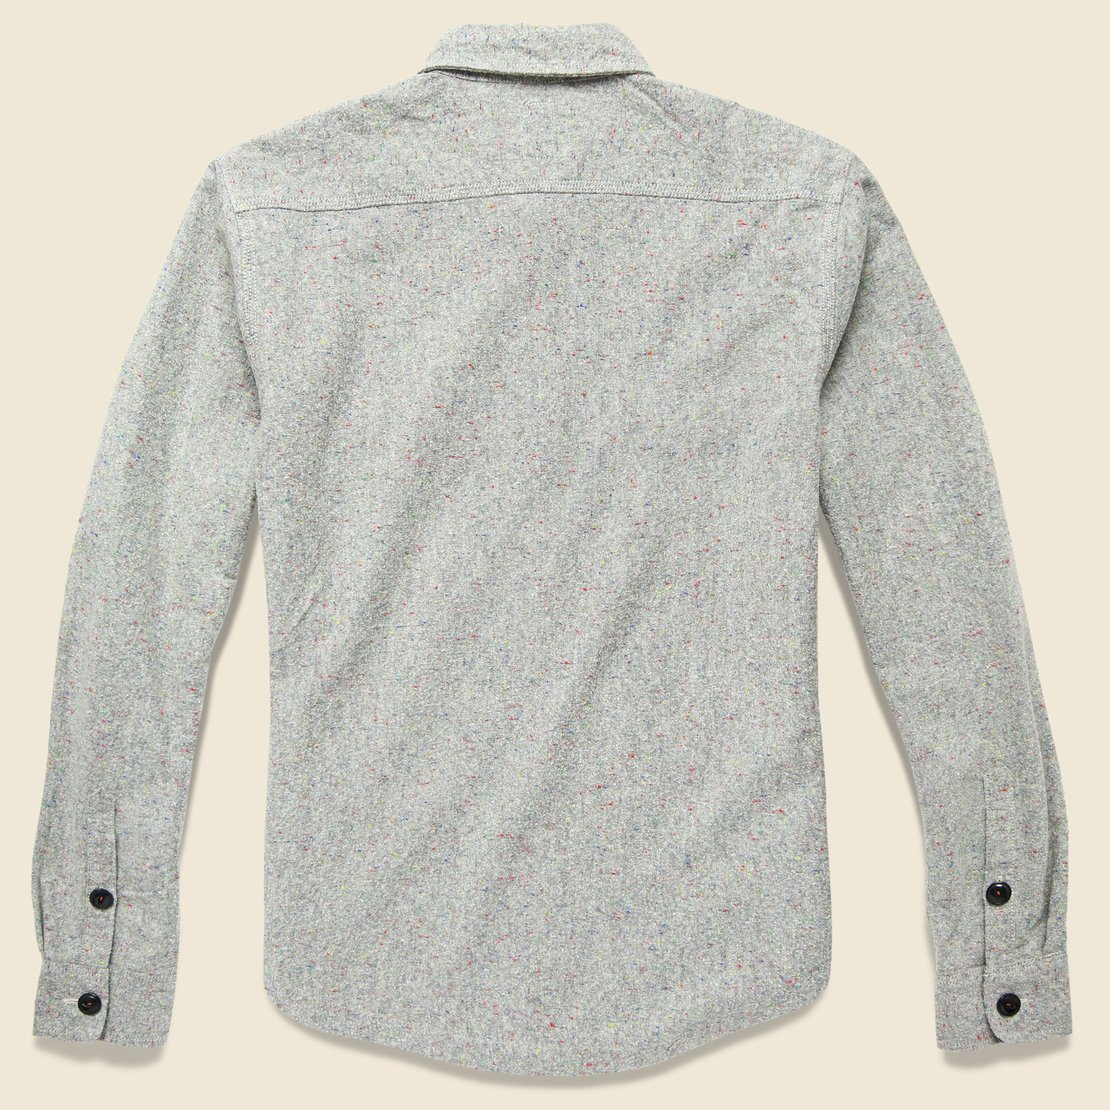 Speckle Overshirt - Grey